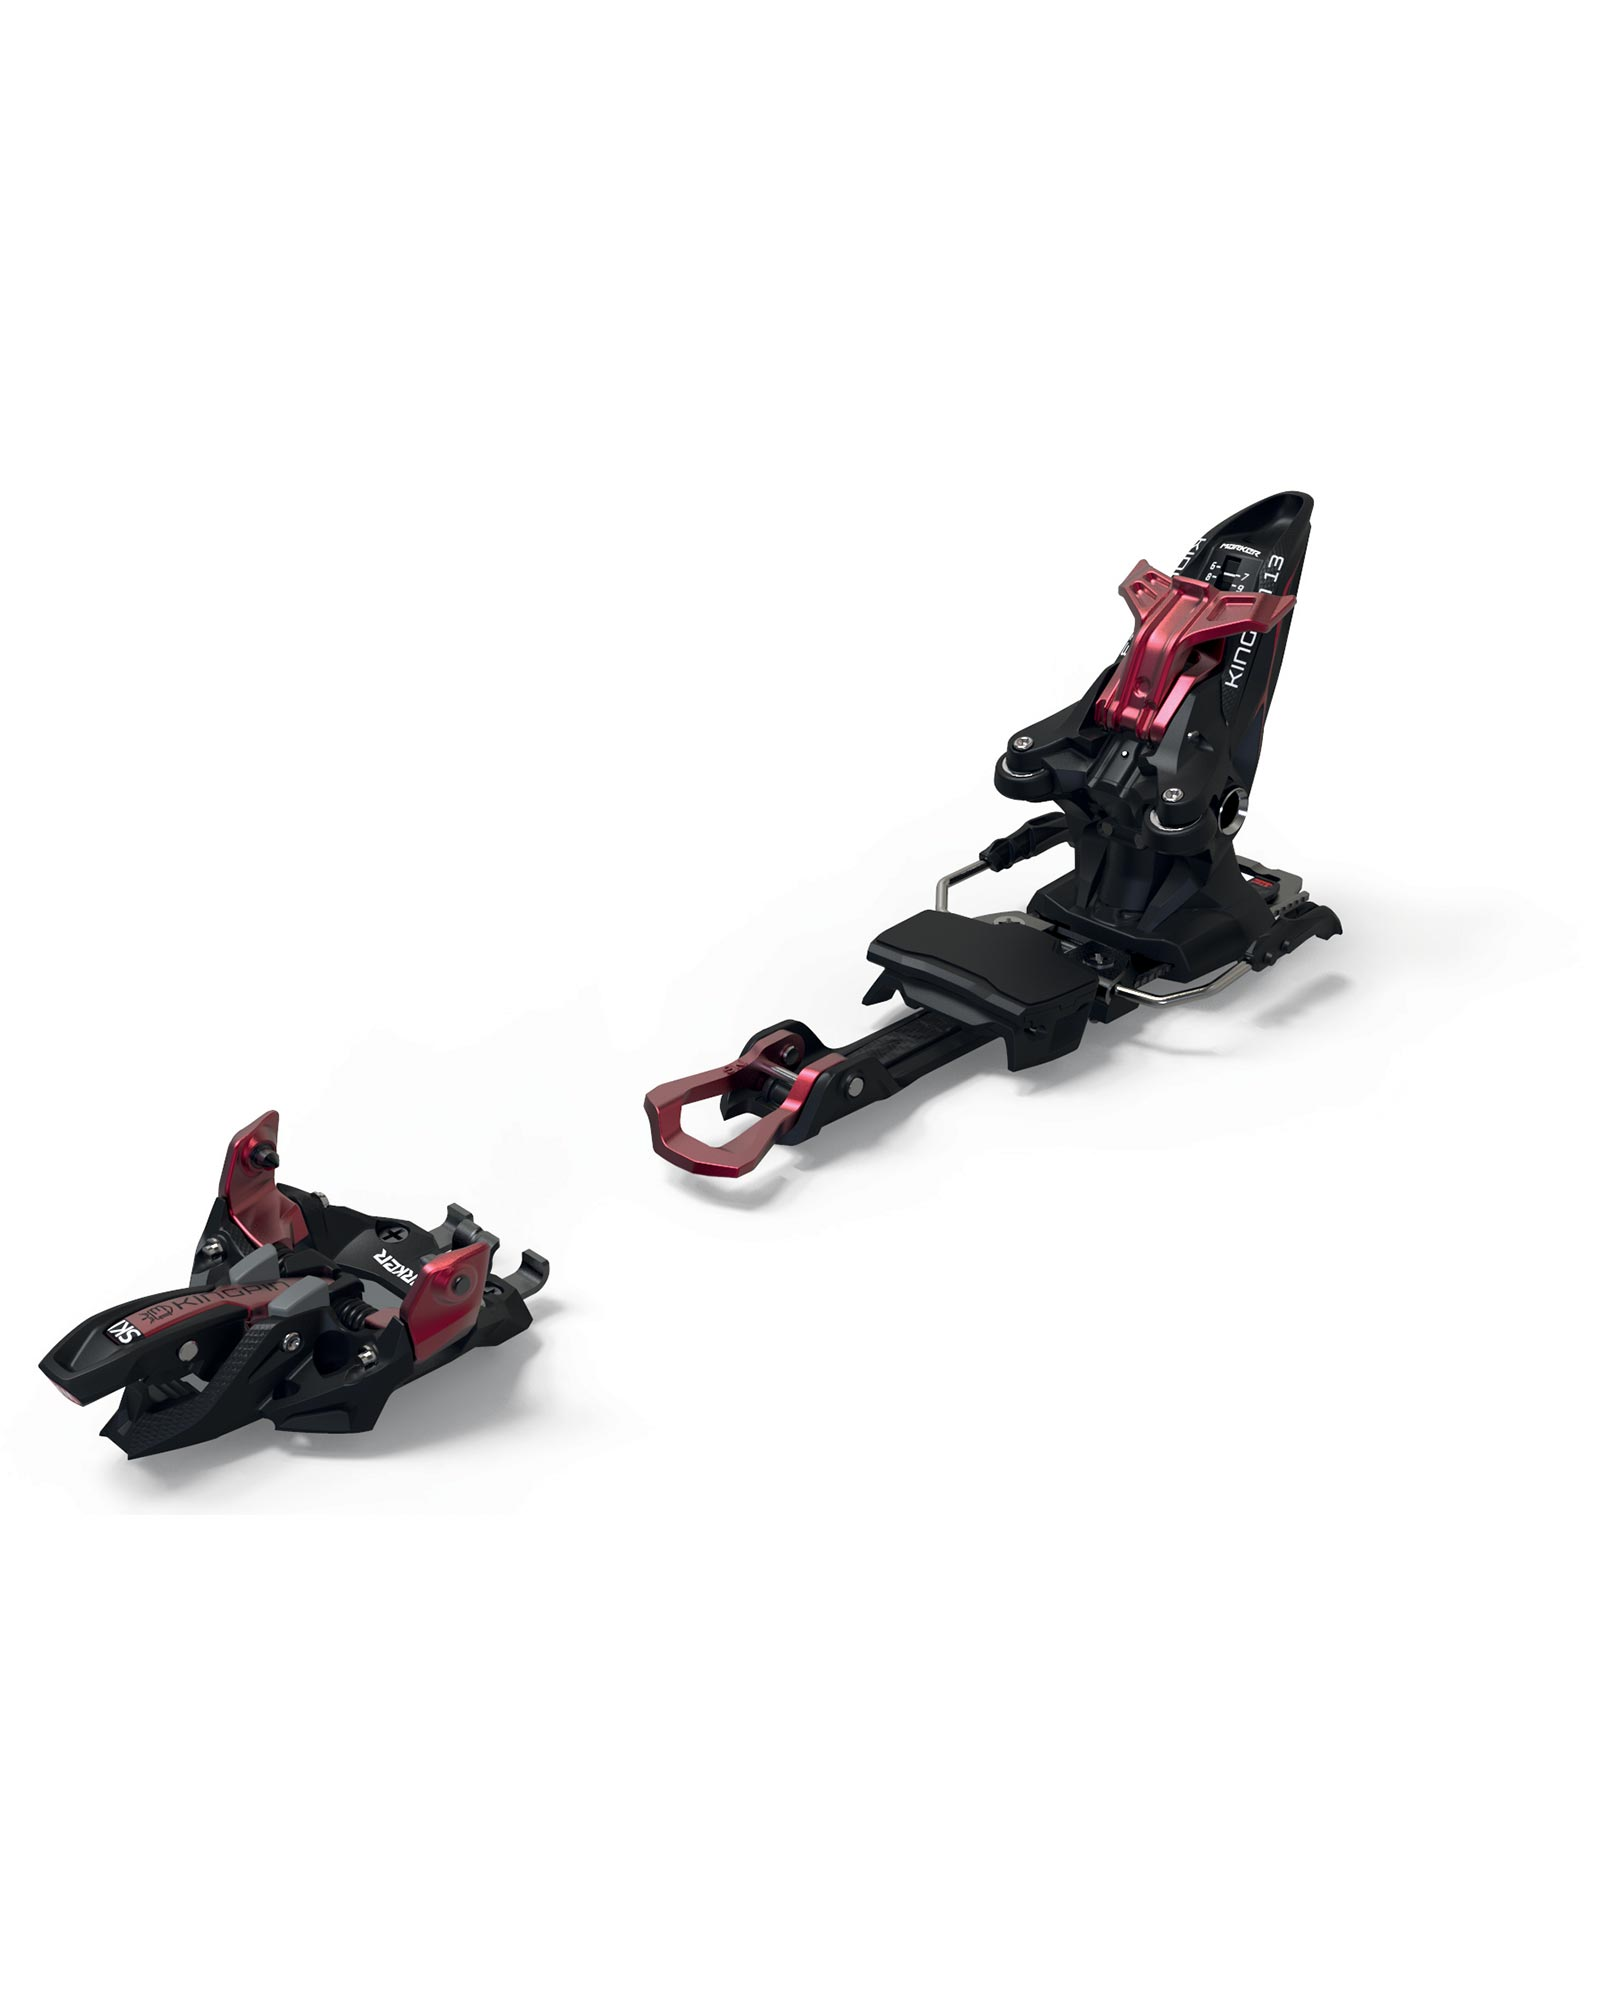 Marker Kingpin 13 100-125mm Backcountry Ski Bindings 2020 / 2021 0